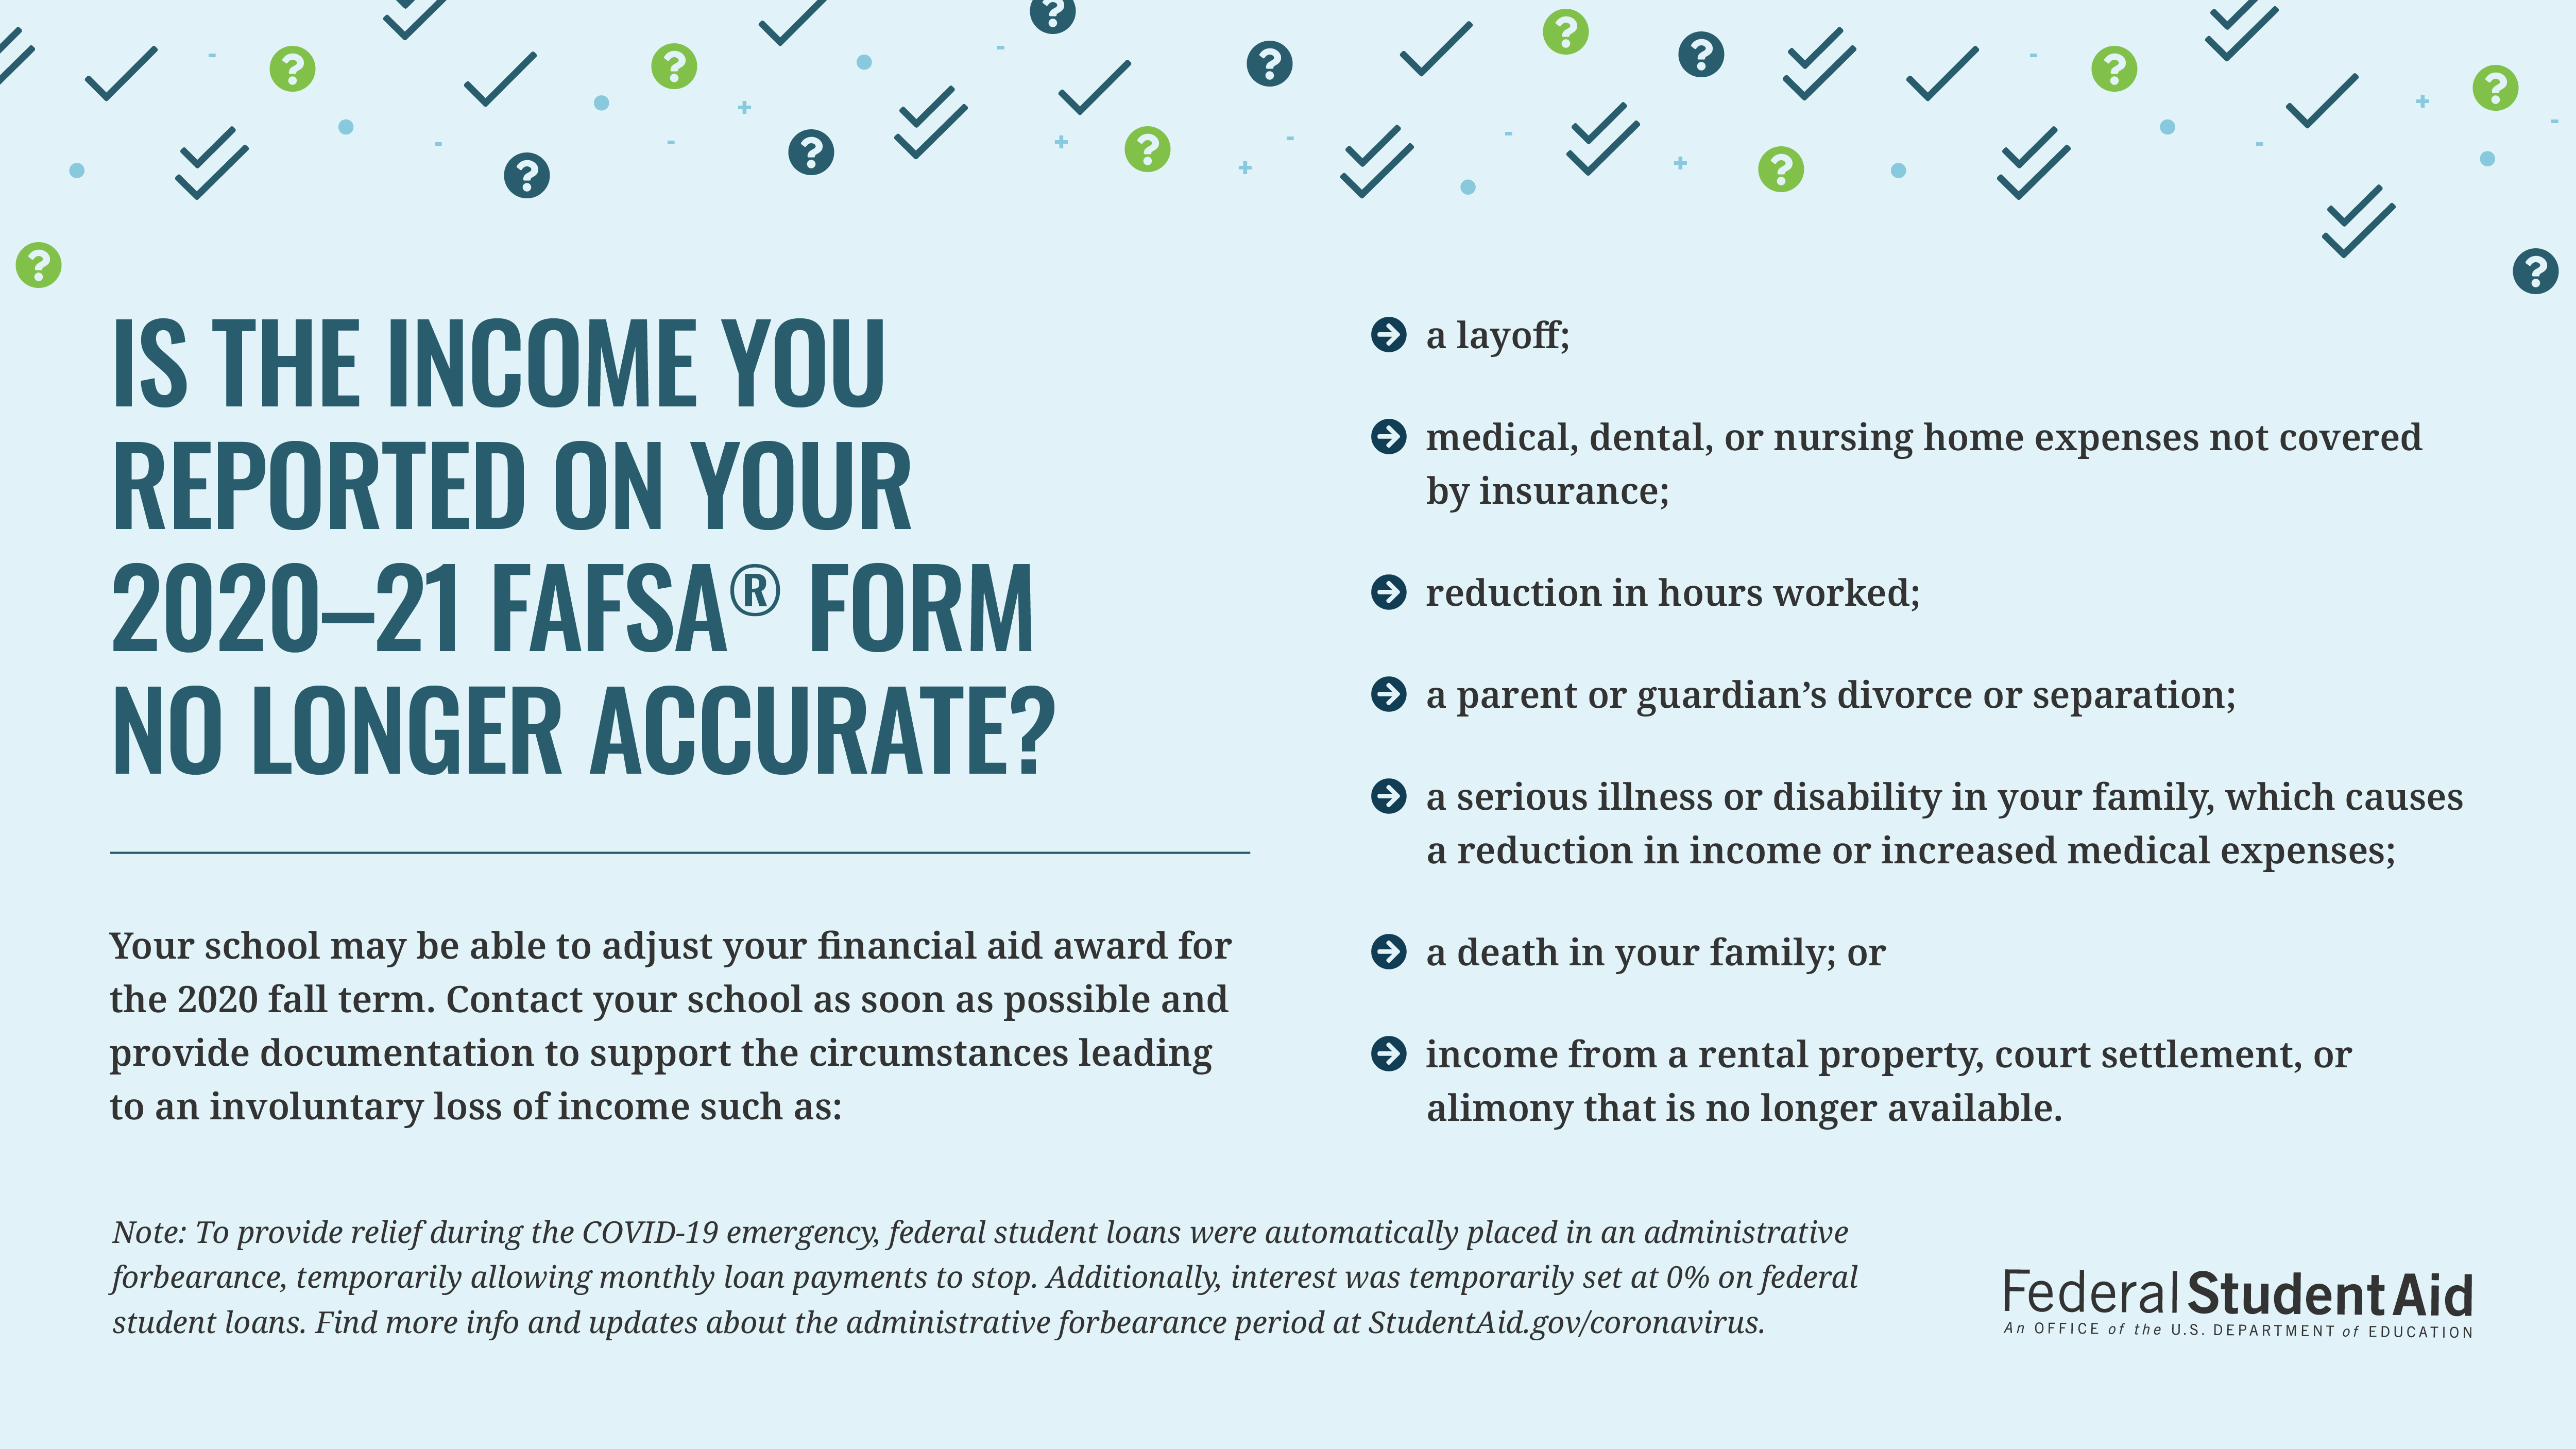 Is the income you reported on your 2020–21 FAFSA® form no longer accurate?  Your school may be able to adjust your financial aid award for the 2020 fall term. Contact your school as soon as possible and provide documentation to support the circumstances leading to an involuntary loss of income such as:   •A layoff;  •Incarceration;  •Reduction in hours worked;  •A parent or guardian's divorce or separation;  •A serious illness or disability in your family which causes a reduction in income or increased medical expenses;  •A death in your family; or   •Income from a rental property, court settlement, or alimony that is no longer available. Note: To provide relief during the COVID-19 emergency, federal student loans were automatically placed in an administrative forbearance, temporarily allowing monthly loan payments to stop. Additionally, interest was temporarily set at 0% on Federal student loans. Find more info and updates about the administrative forbearance period at StudentAid.gov/coronavirus.